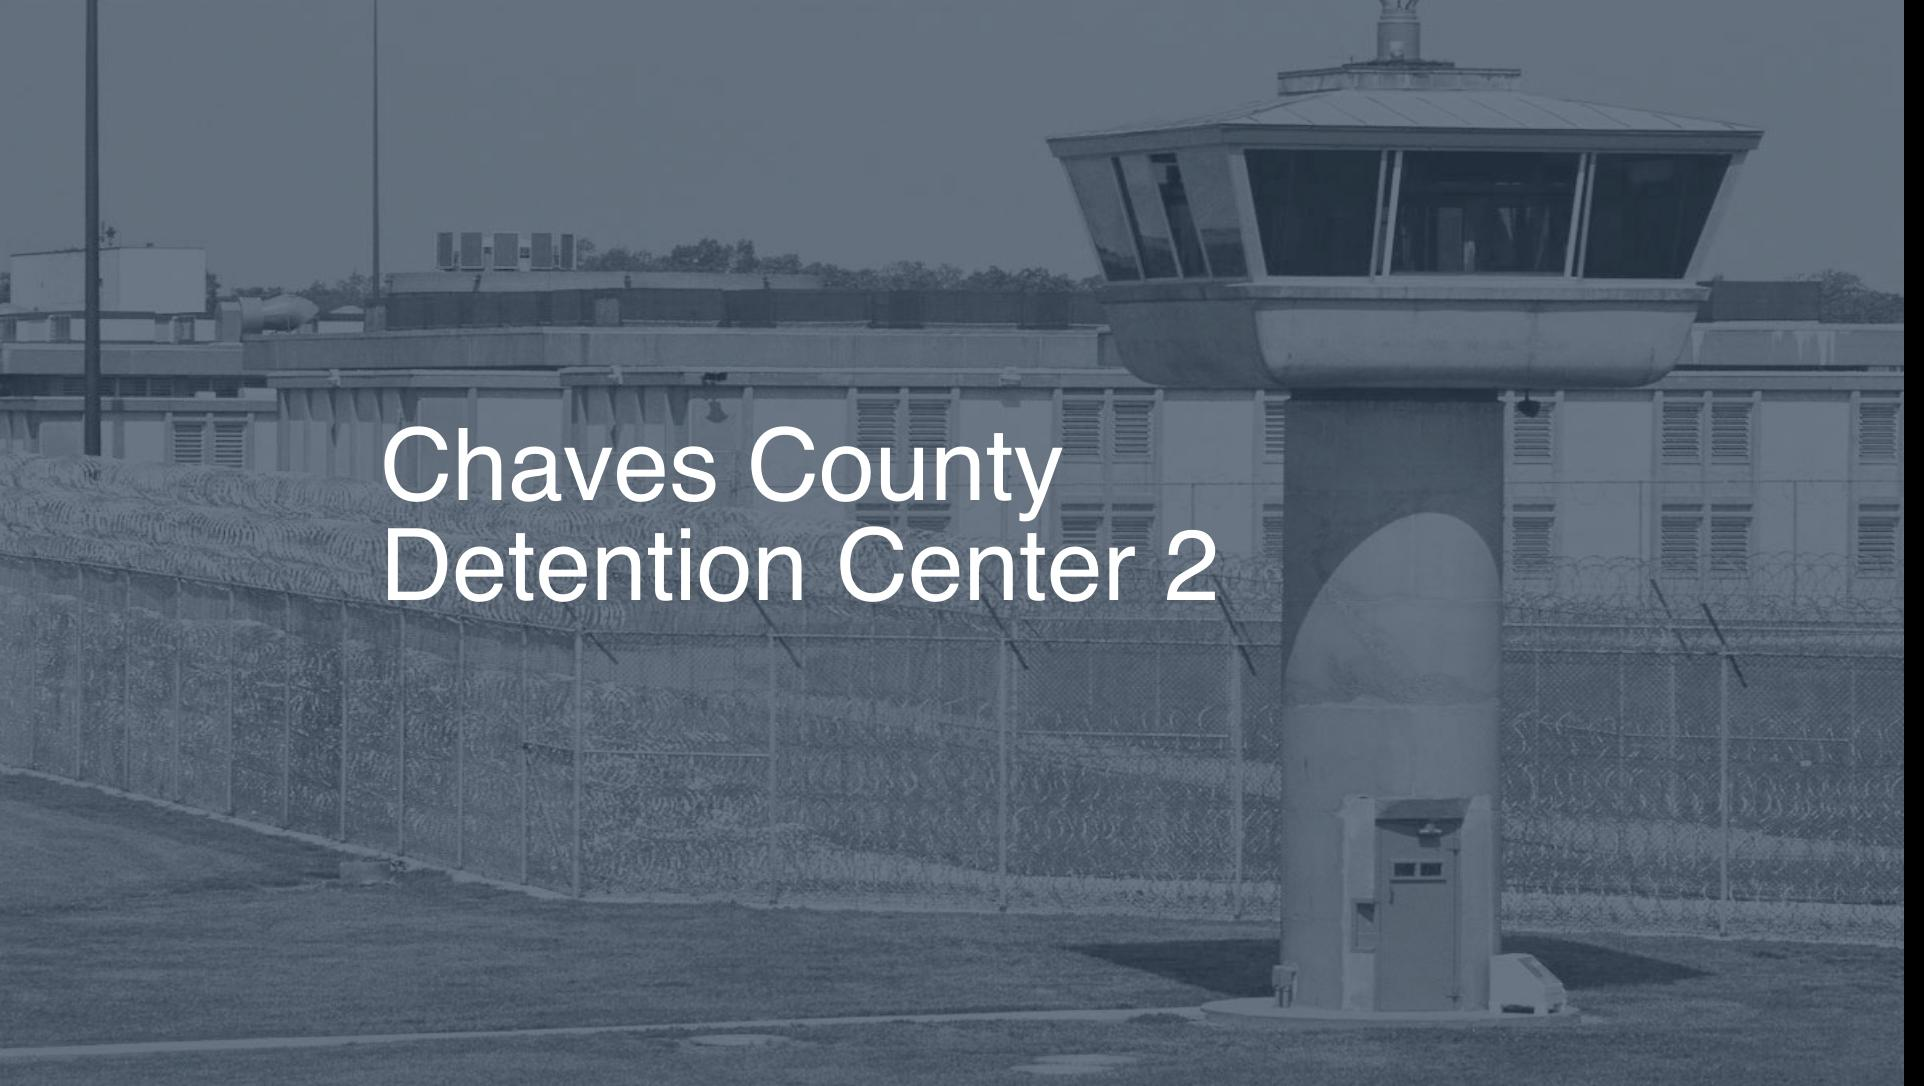 Chaves County Detention Center correctional facility picture